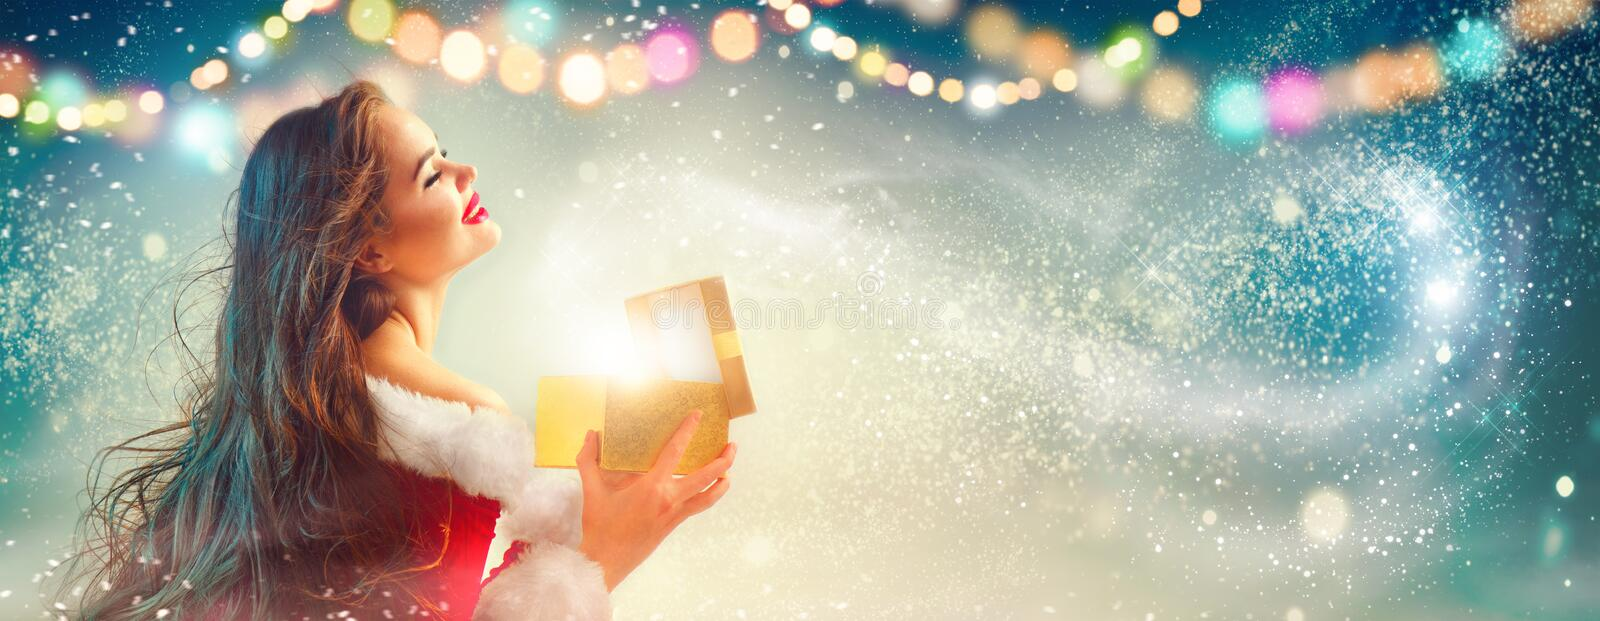 Christmas scene. Beauty brunette young woman in party costume opening gift box royalty free stock photo